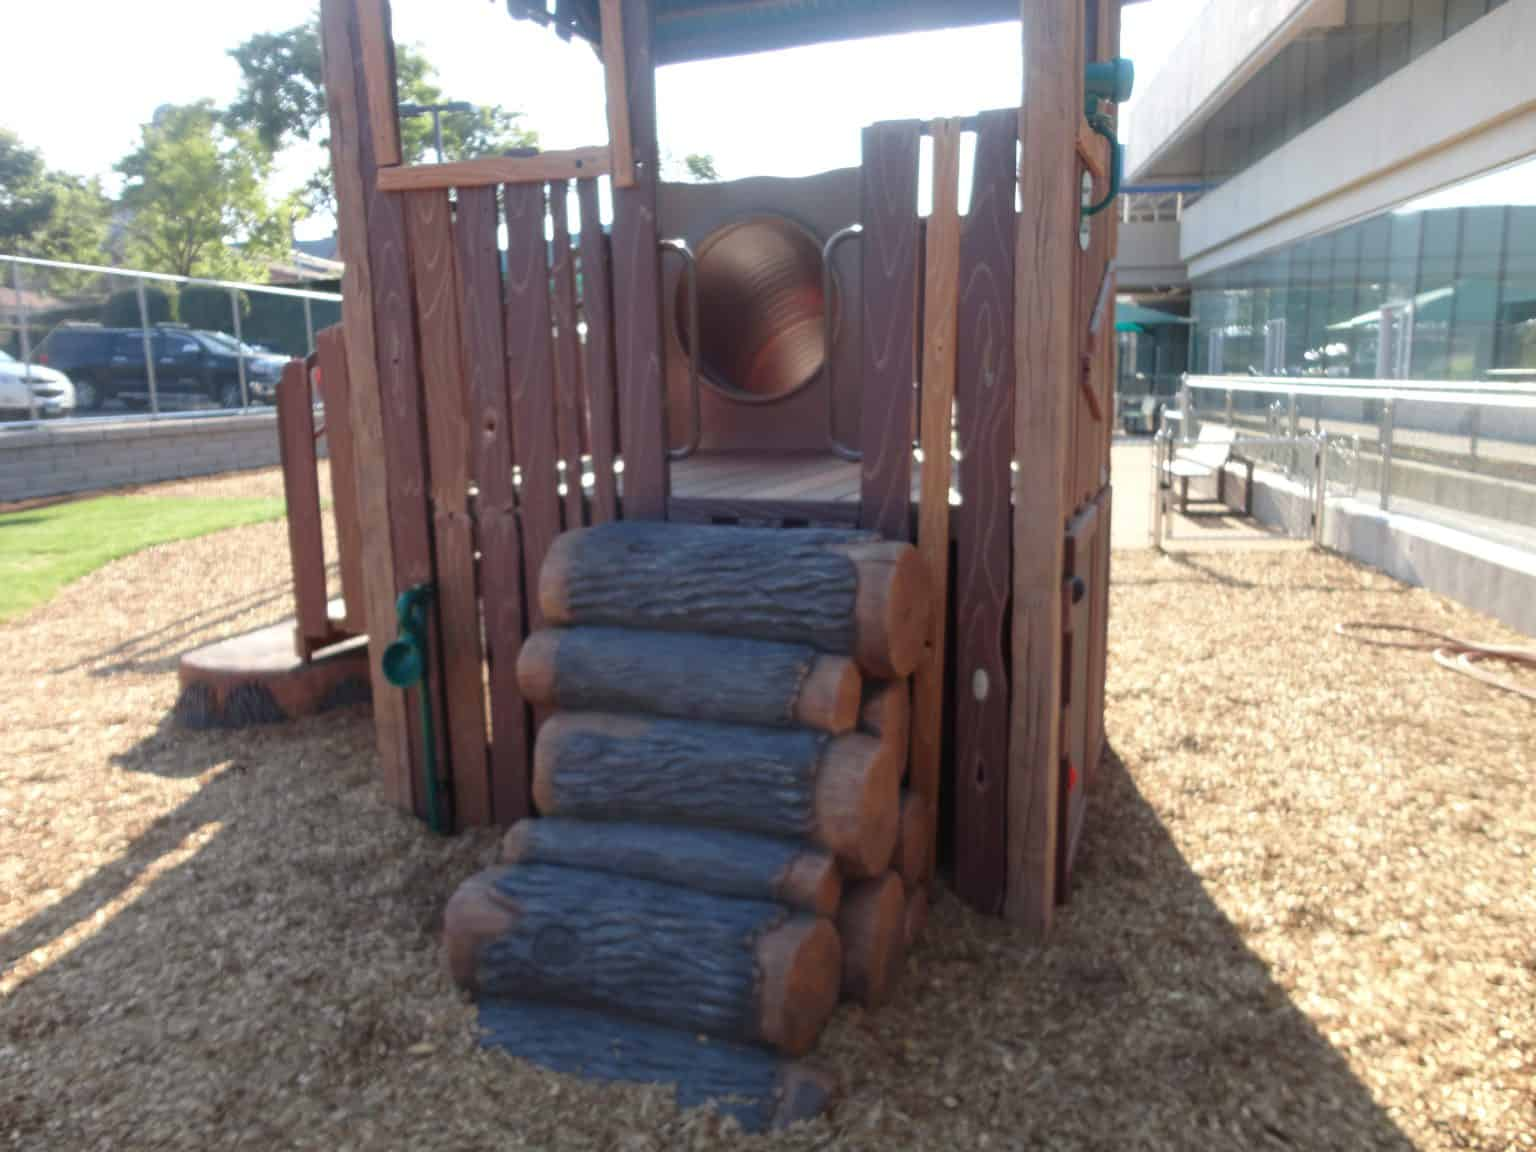 phyllis-bodel-daycare-playground-new-haven-ct_17939708708_o-1536x1152